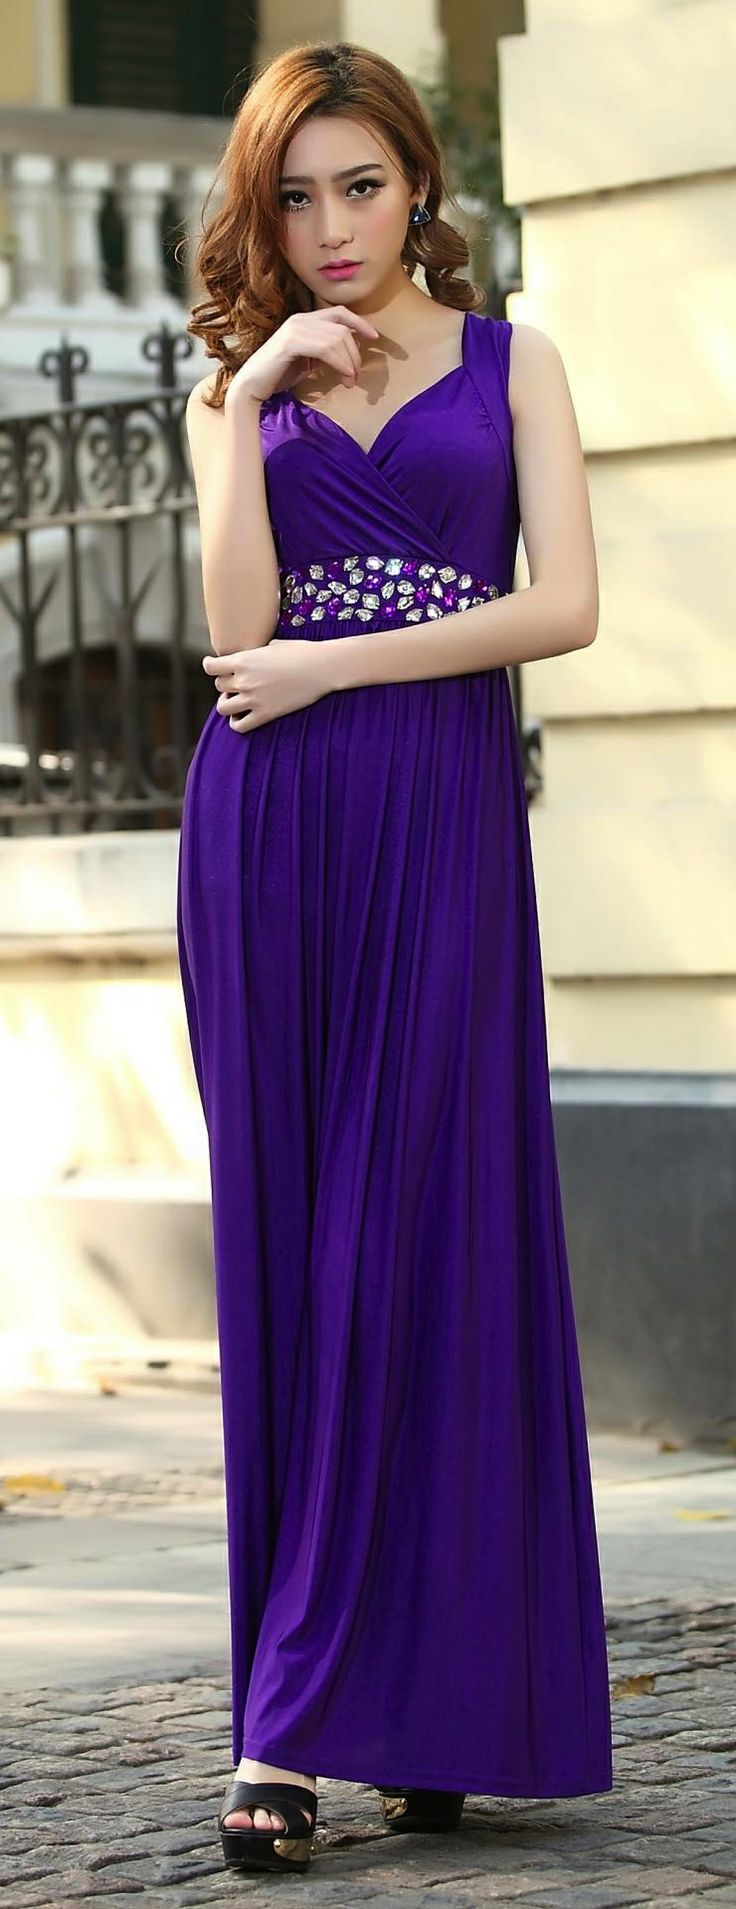 The 25 best cadbury purple bridesmaid dresses ideas on pinterest cadbury purple bridesmaid dress formal cocktail bead prom party evening maxi dress plus sizes evening cocktail ombrellifo Image collections